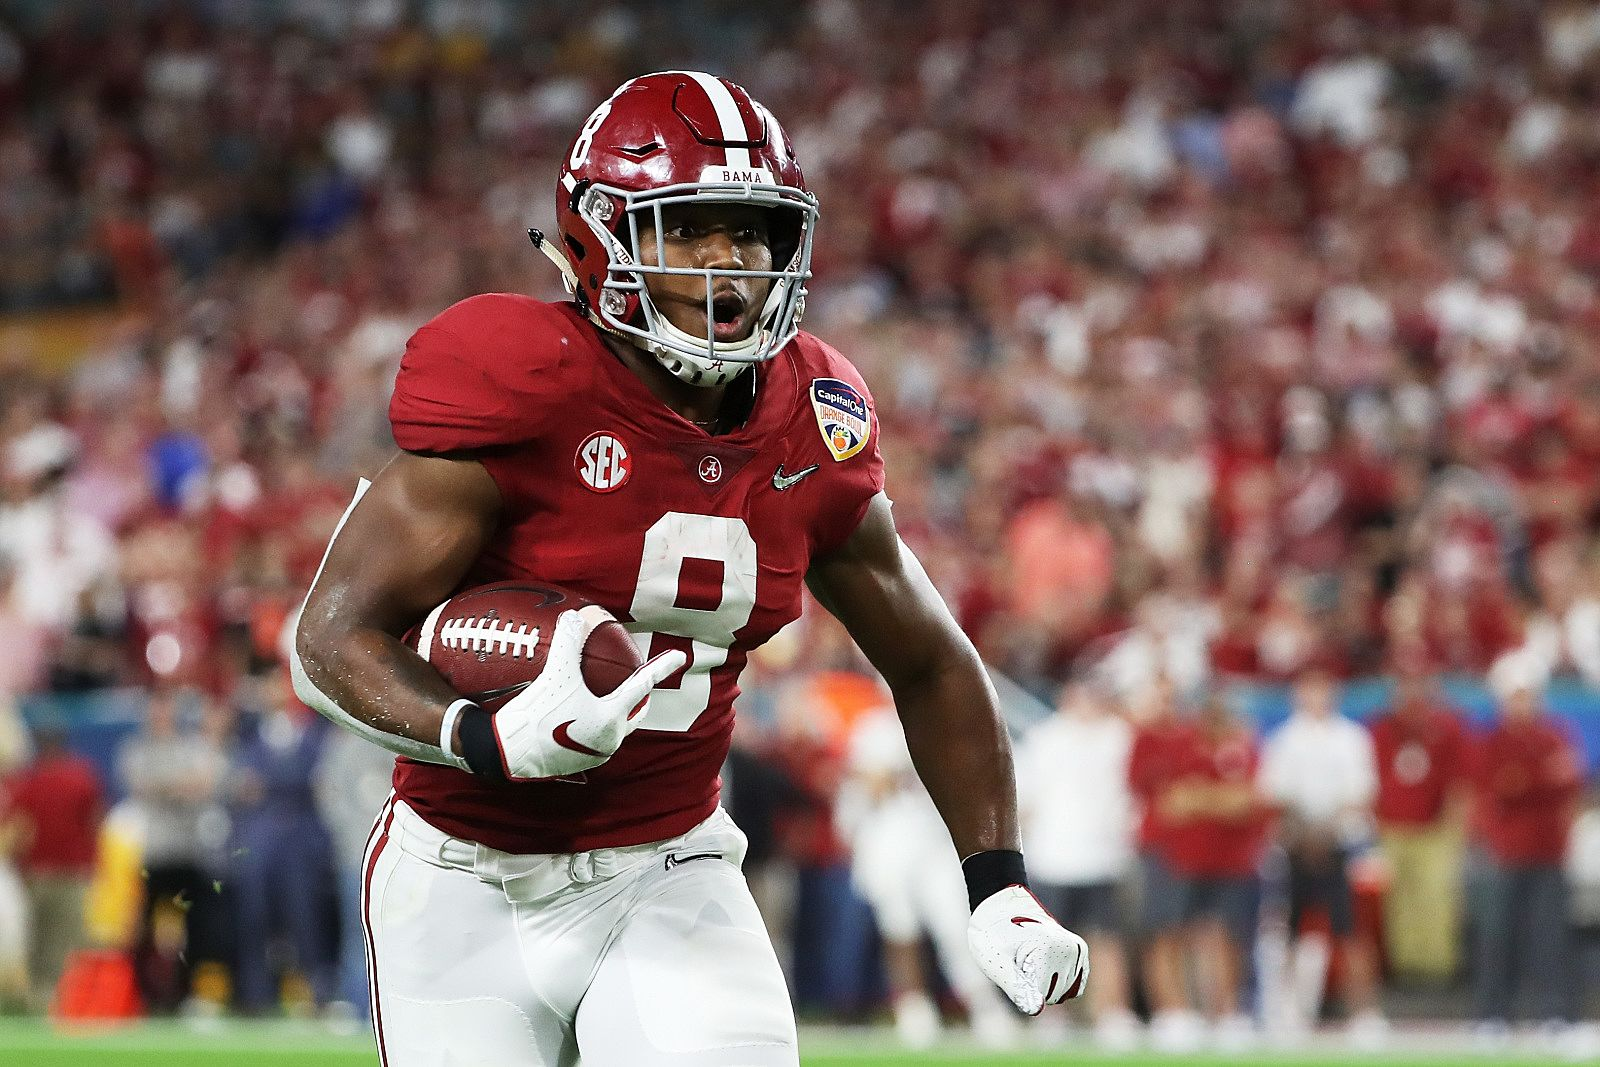 MIAMI, FL - DECEMBER 29:  Josh Jacobs #8 of the Alabama Crimson Tide carries the ball in the second quarter during the College Football Playoff Semifinal against the Oklahoma Sooners at the Capital One Orange Bowl at Hard Rock Stadium on December 29, 2018 in Miami, Florida.  (Photo by Streeter Lecka/Getty Images)